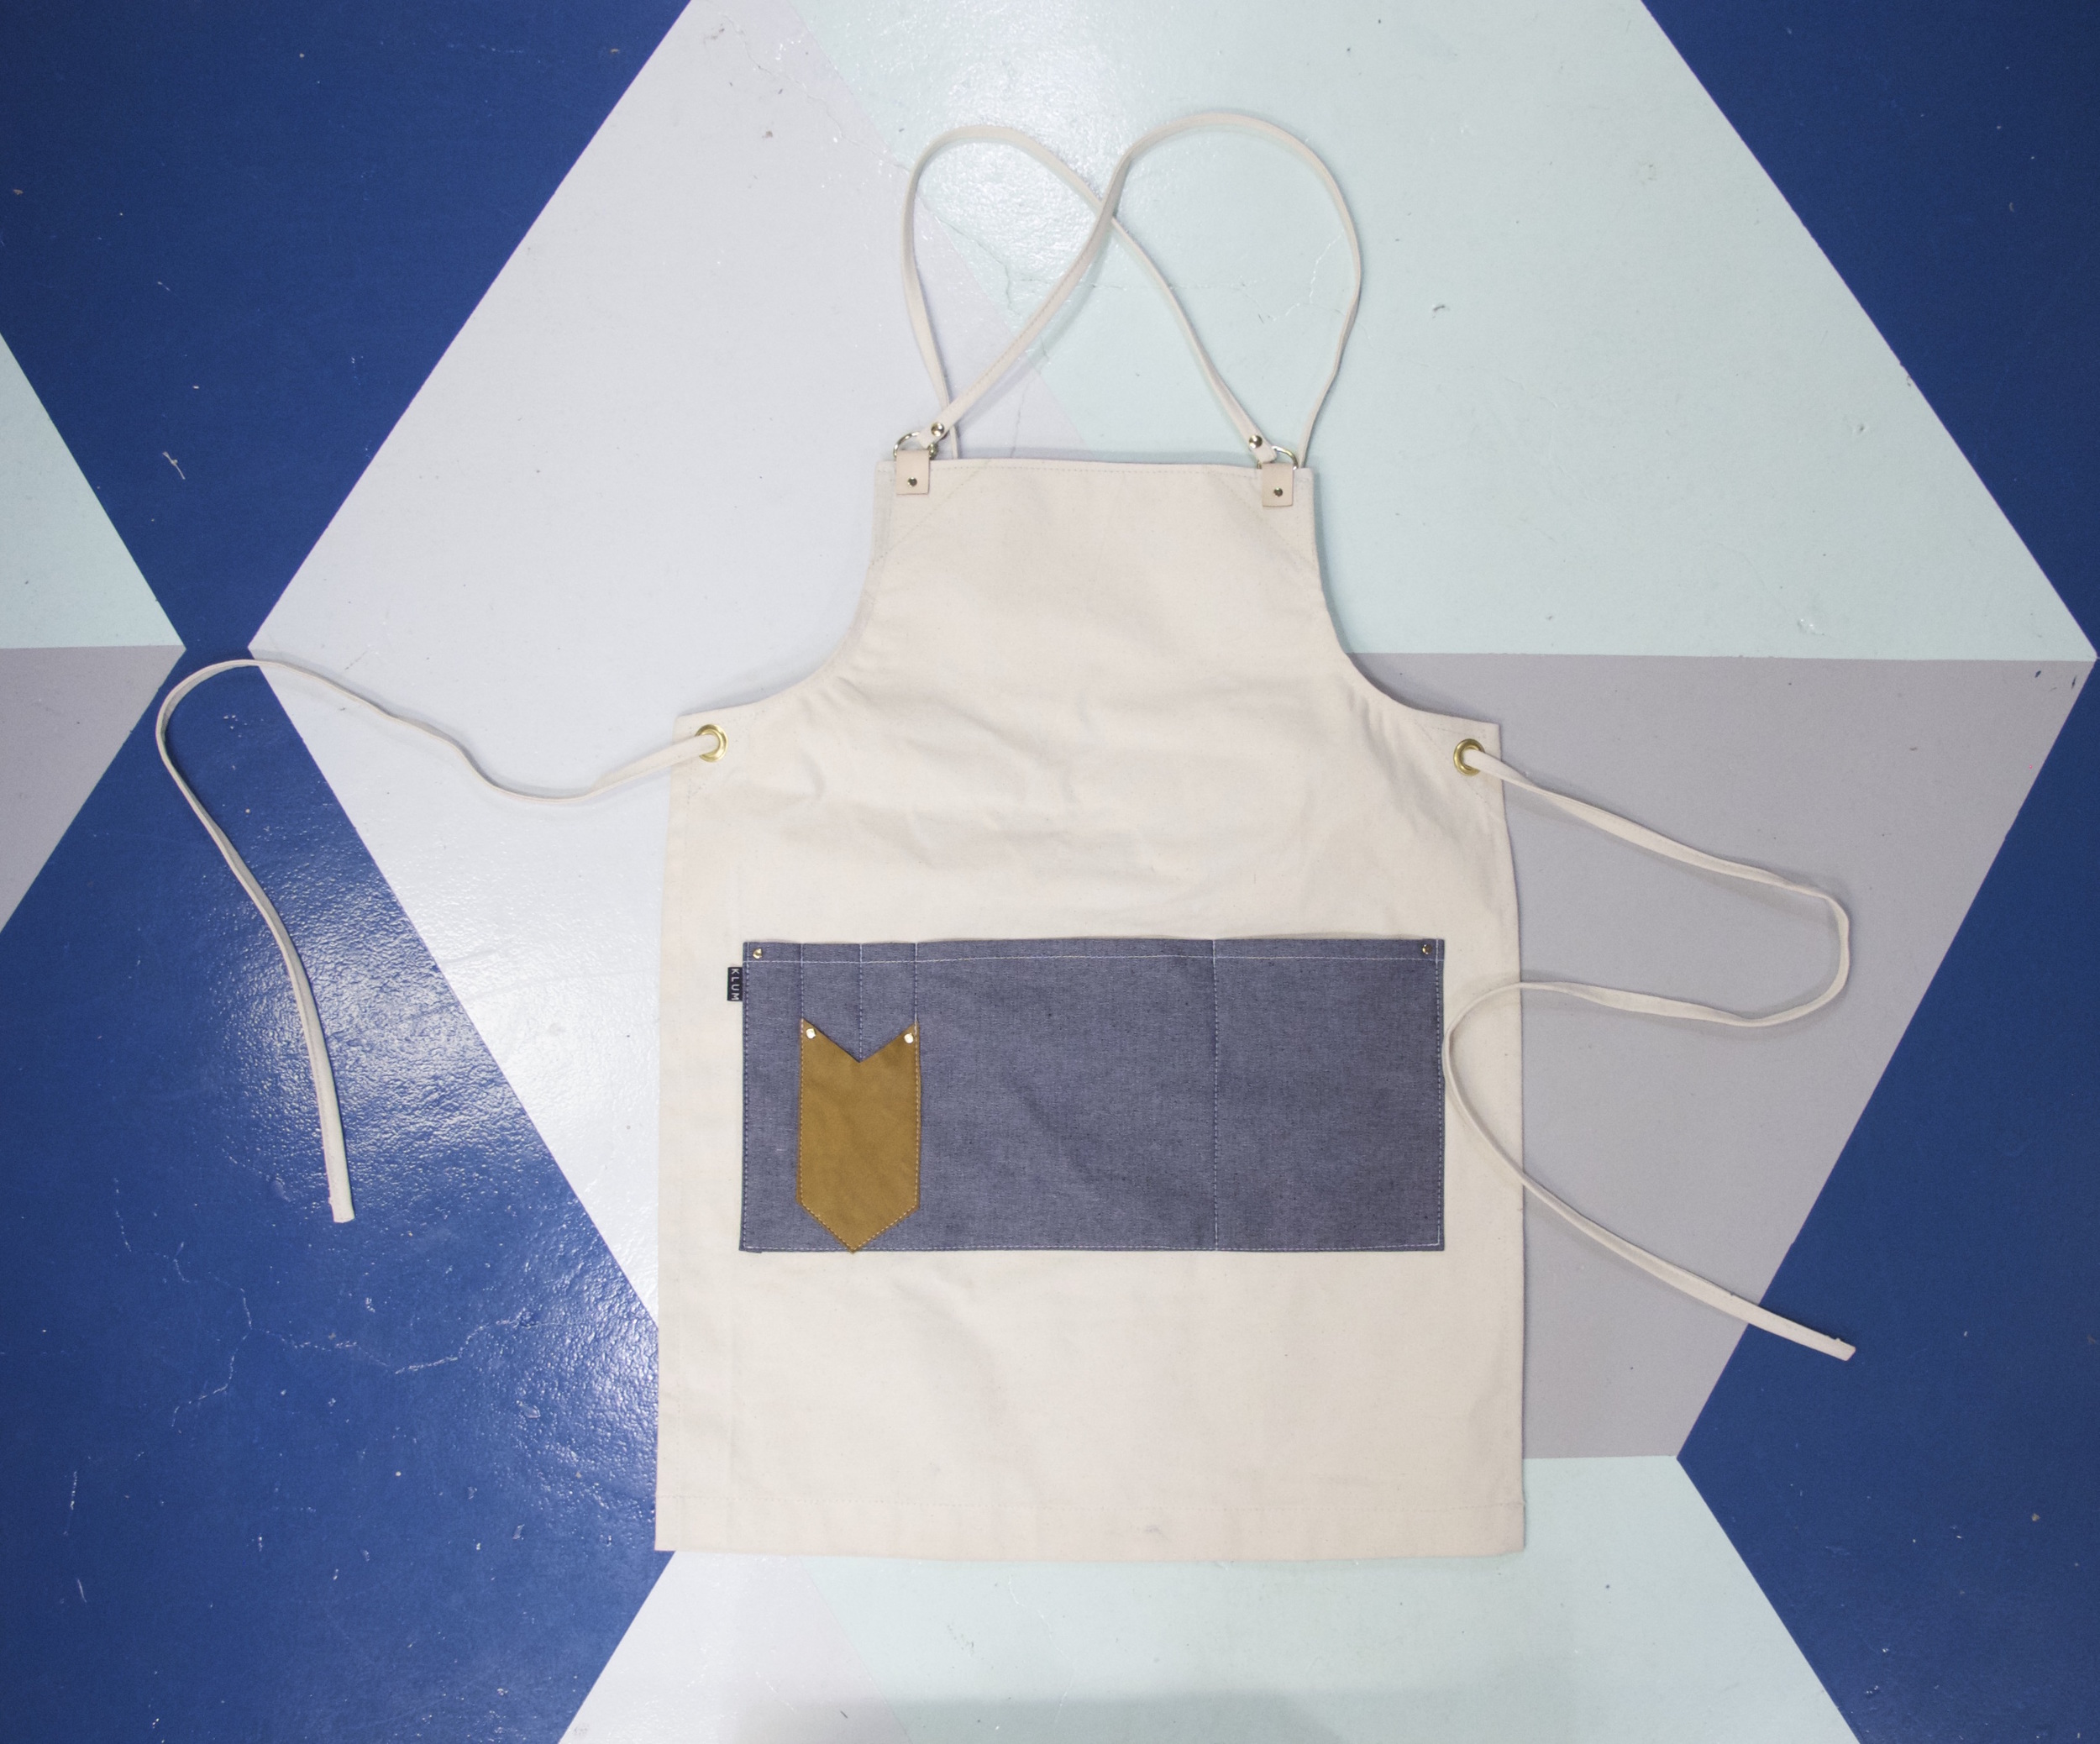 Upcoming Maker's Apron Sewing Workshop at Klum House